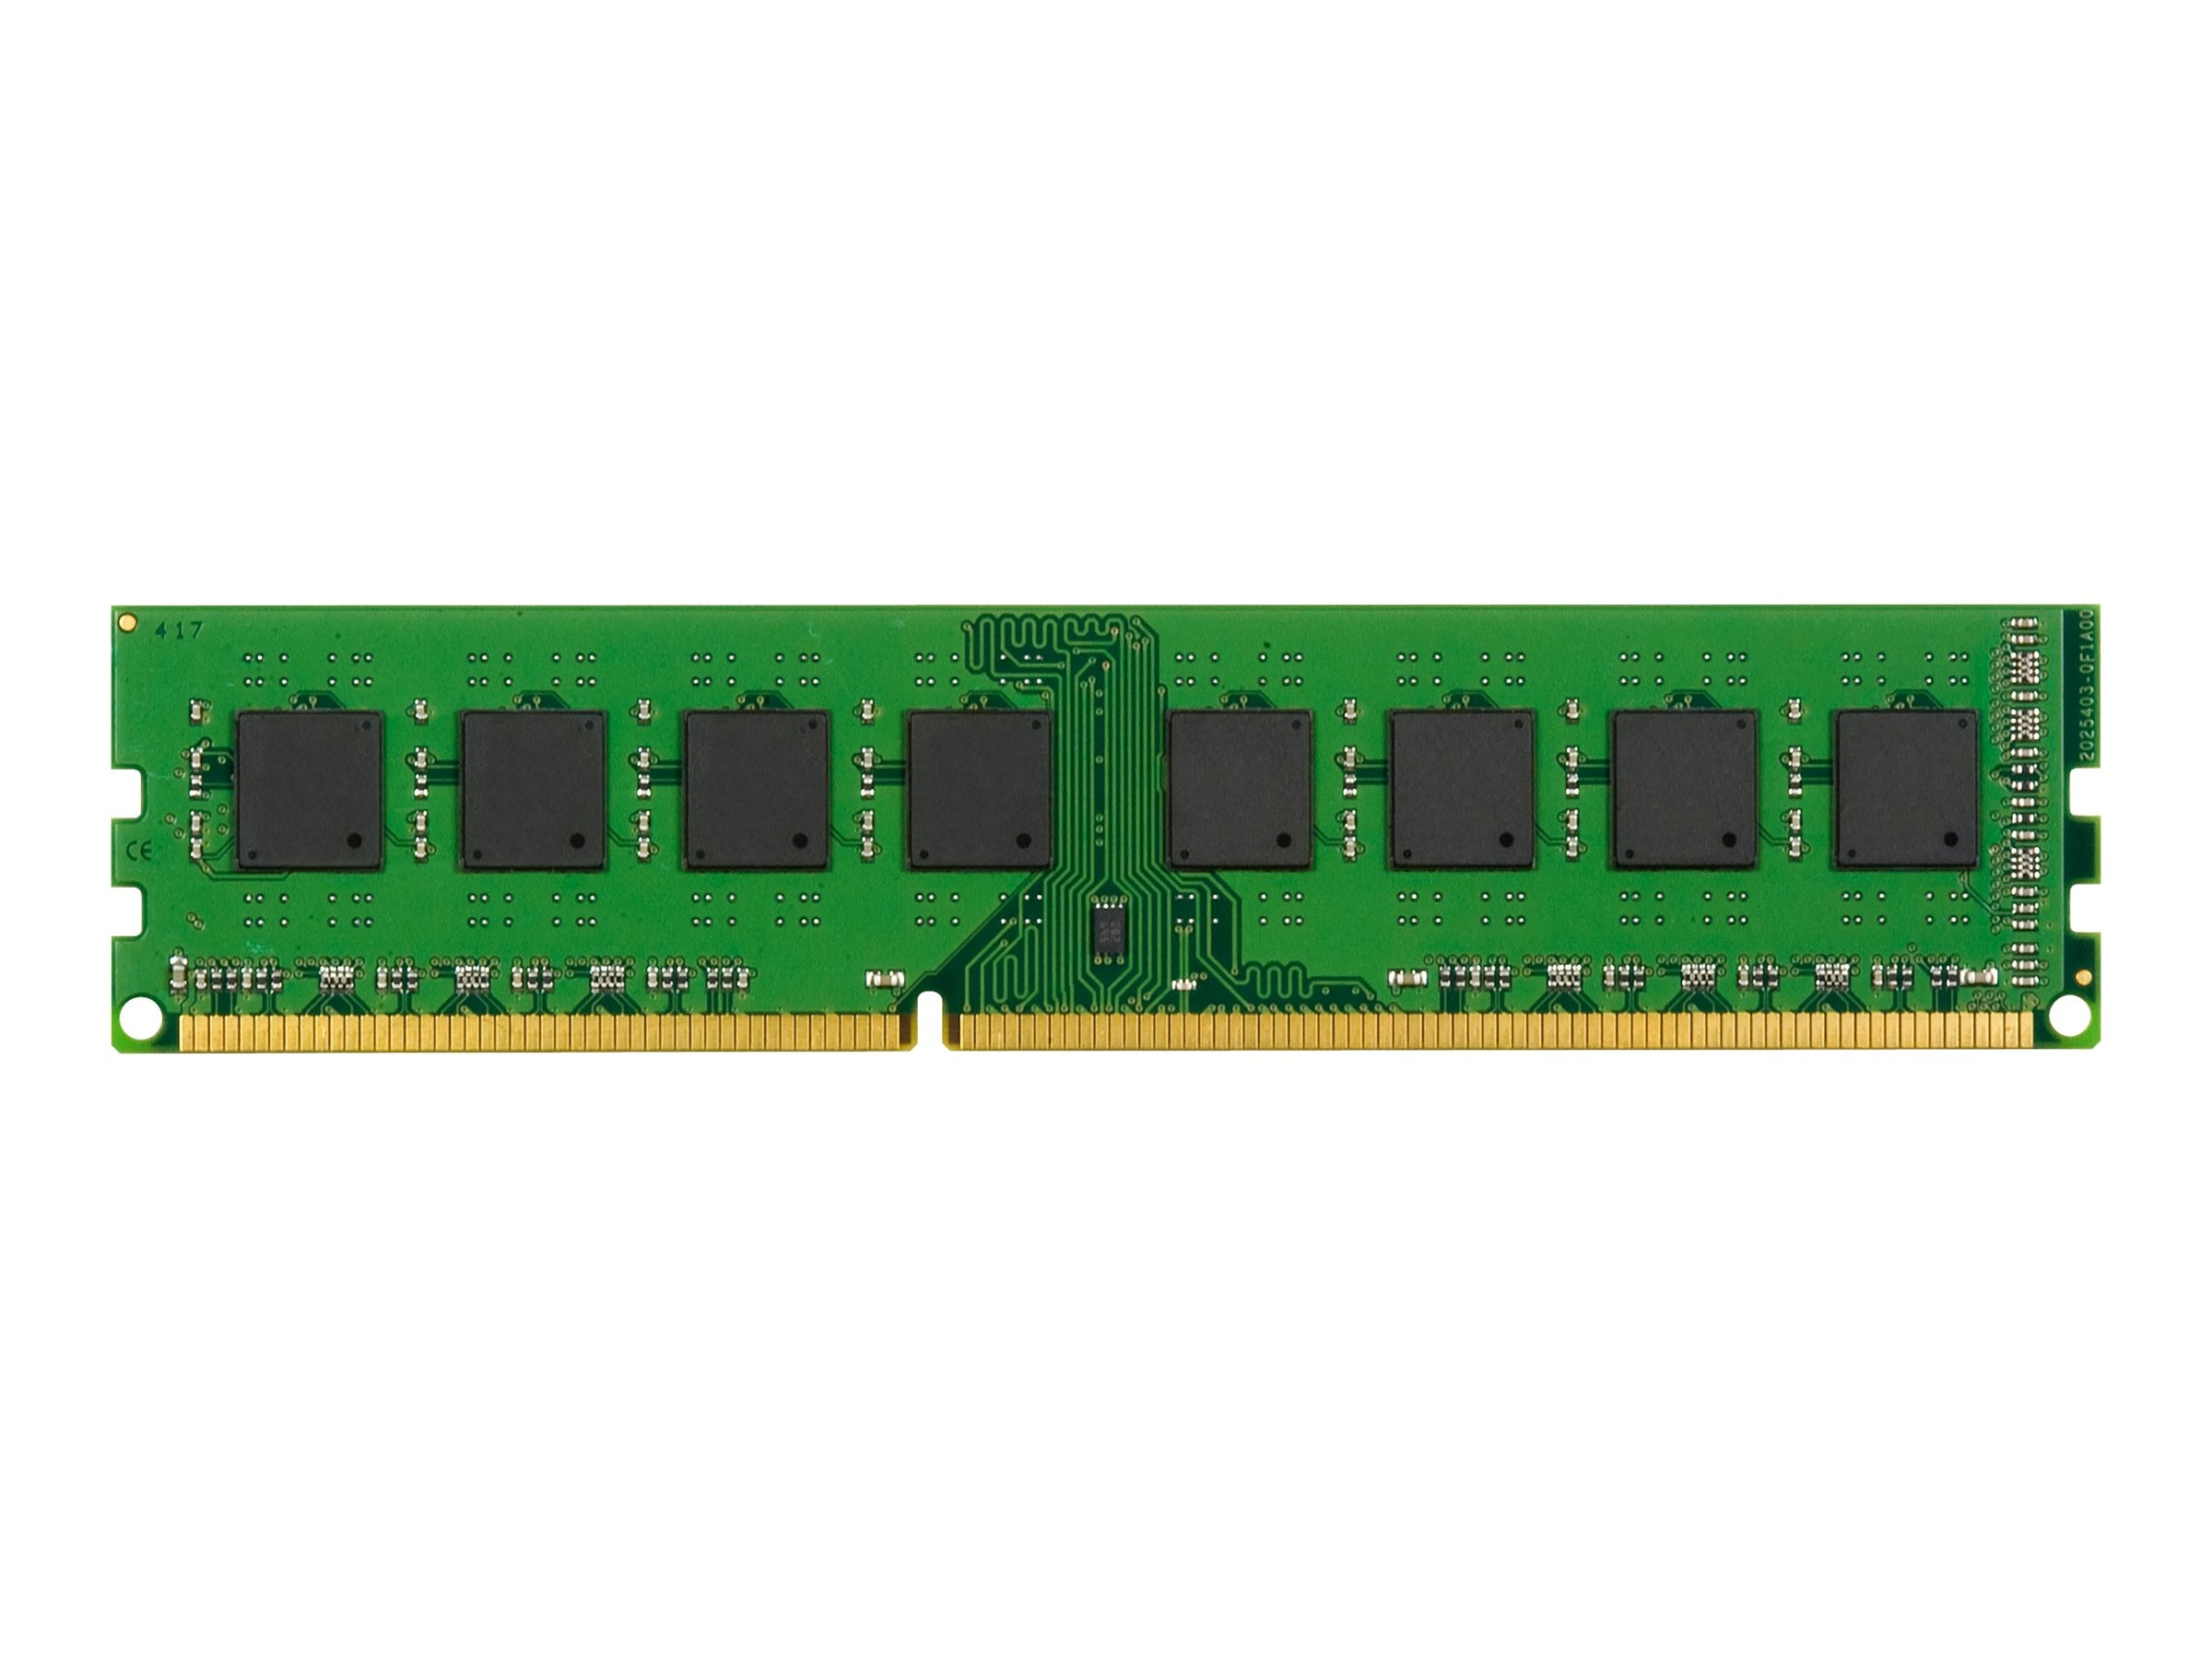 Kingston 8GB PC3-10600 240-pin DDR3 SDRAM DIMM for Select CQ Desktop, Elite, Pavilion, Presario Models